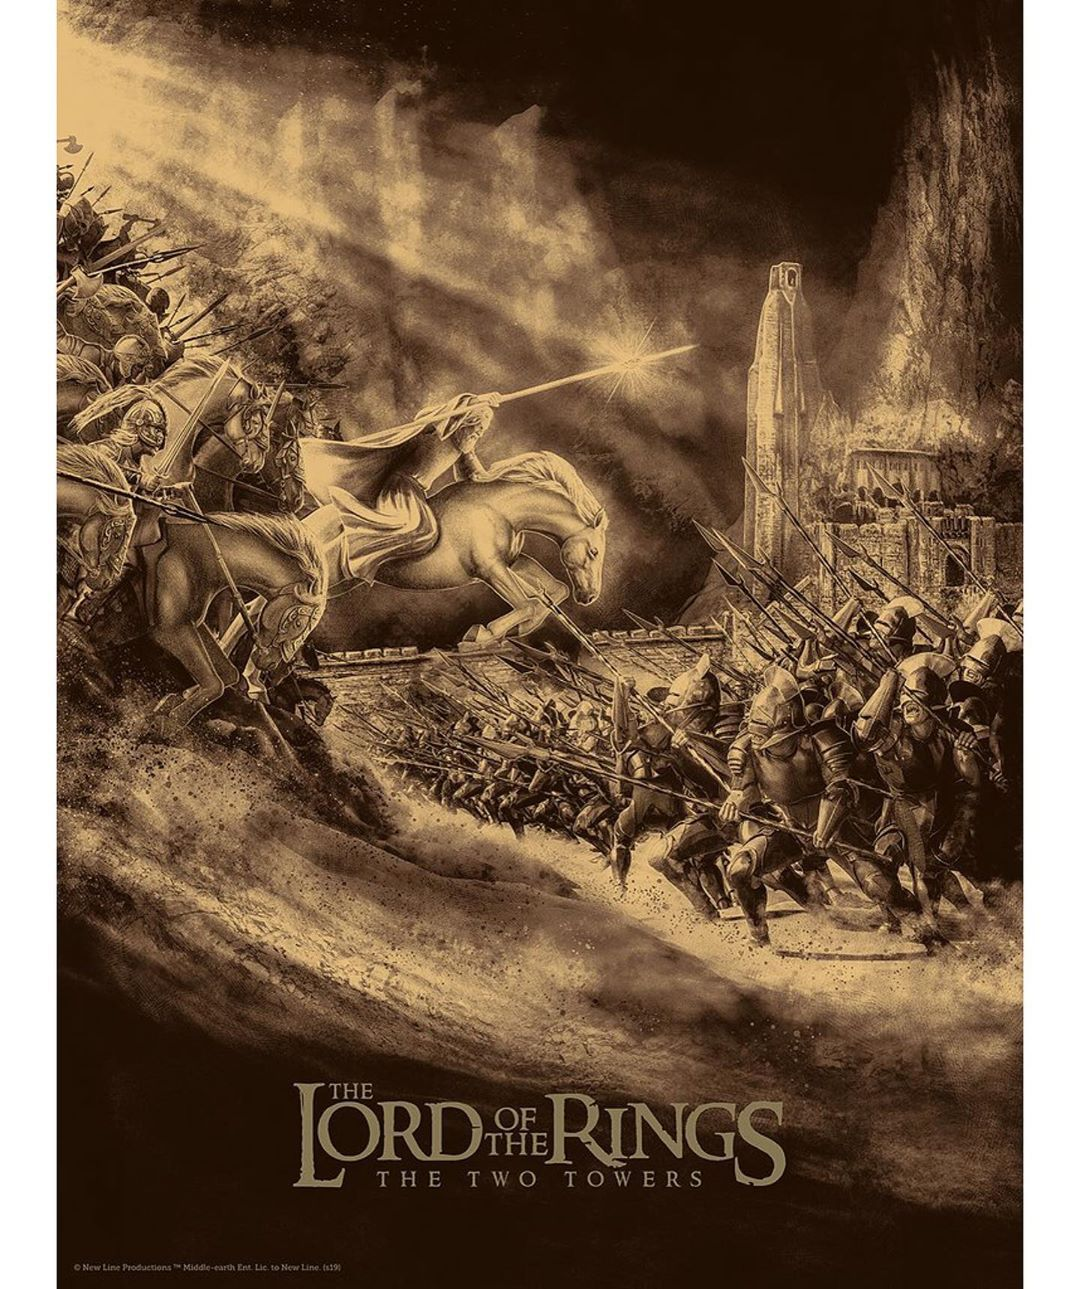 The Lord of the Rings The Two Towers by skinnercreative